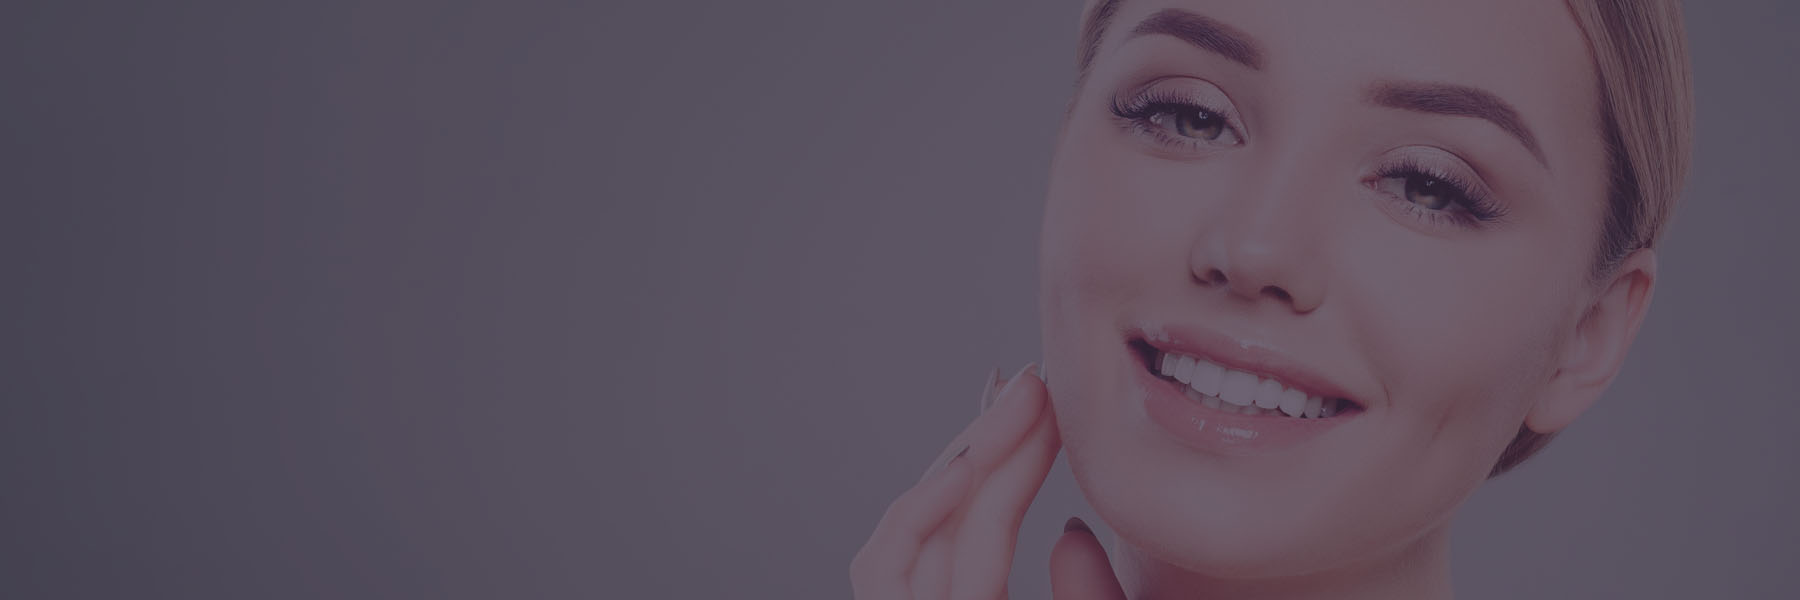 Facial Aesthetics<br> Refresh and Rejuvenate